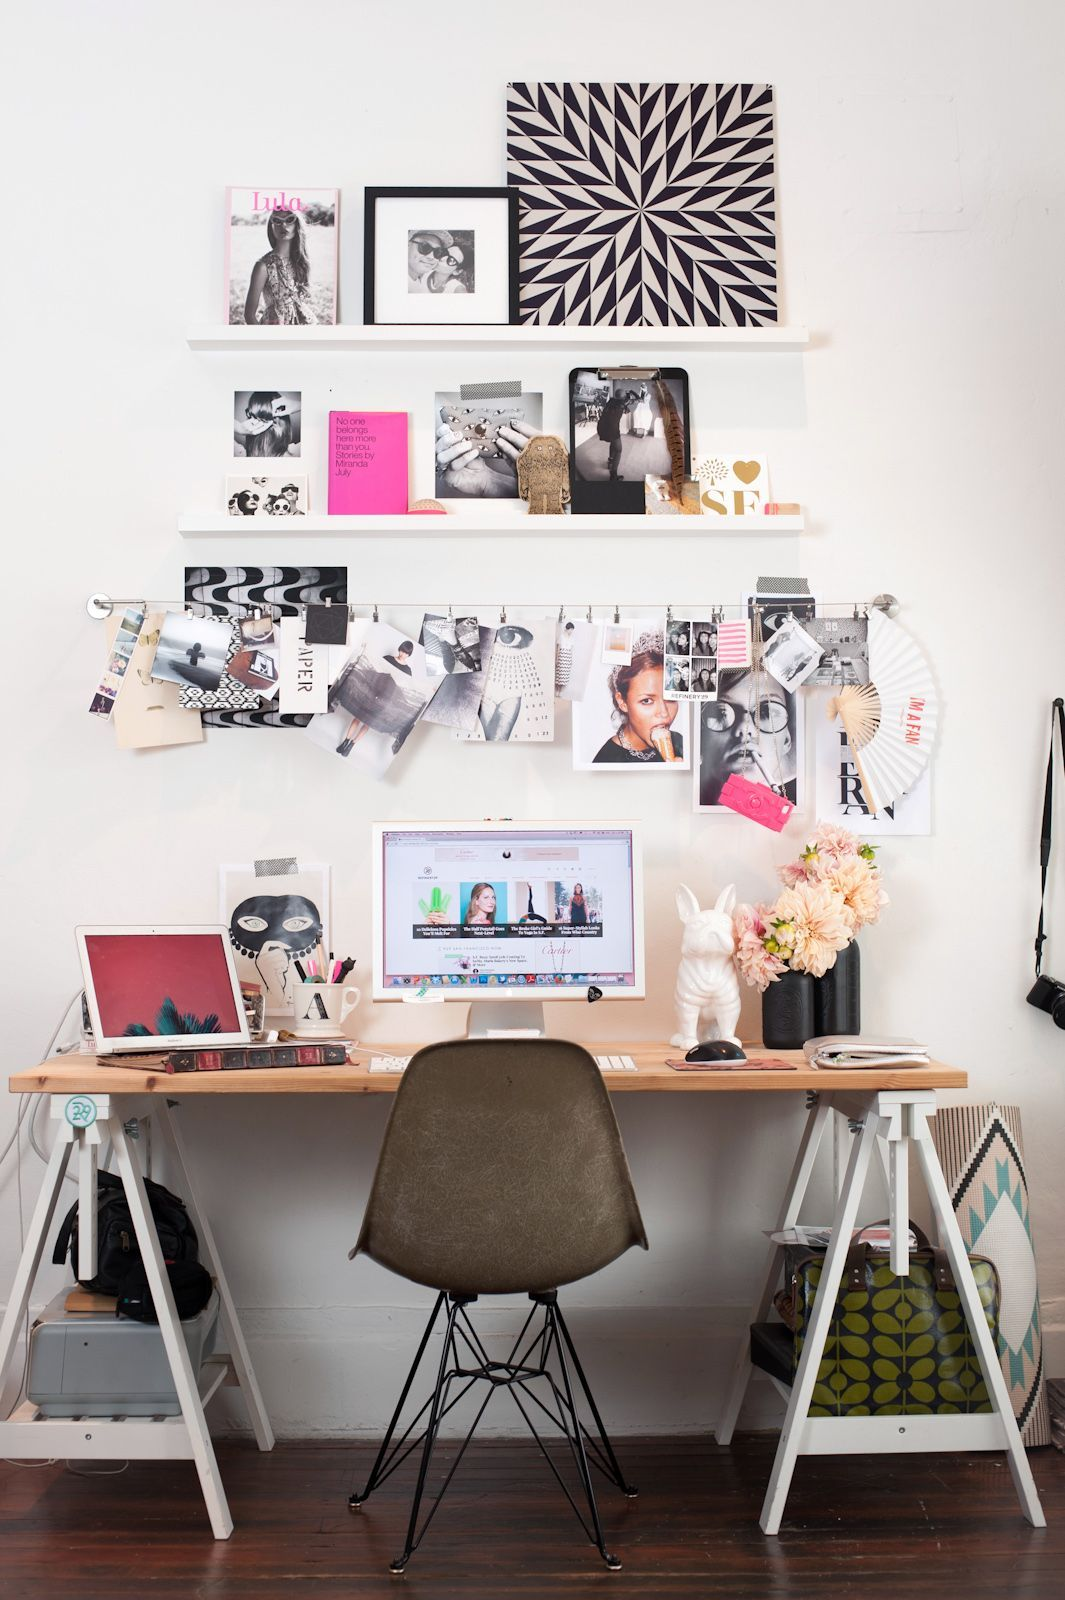 13 Desk Situations That Are SO Next-Level | Interior Design ...